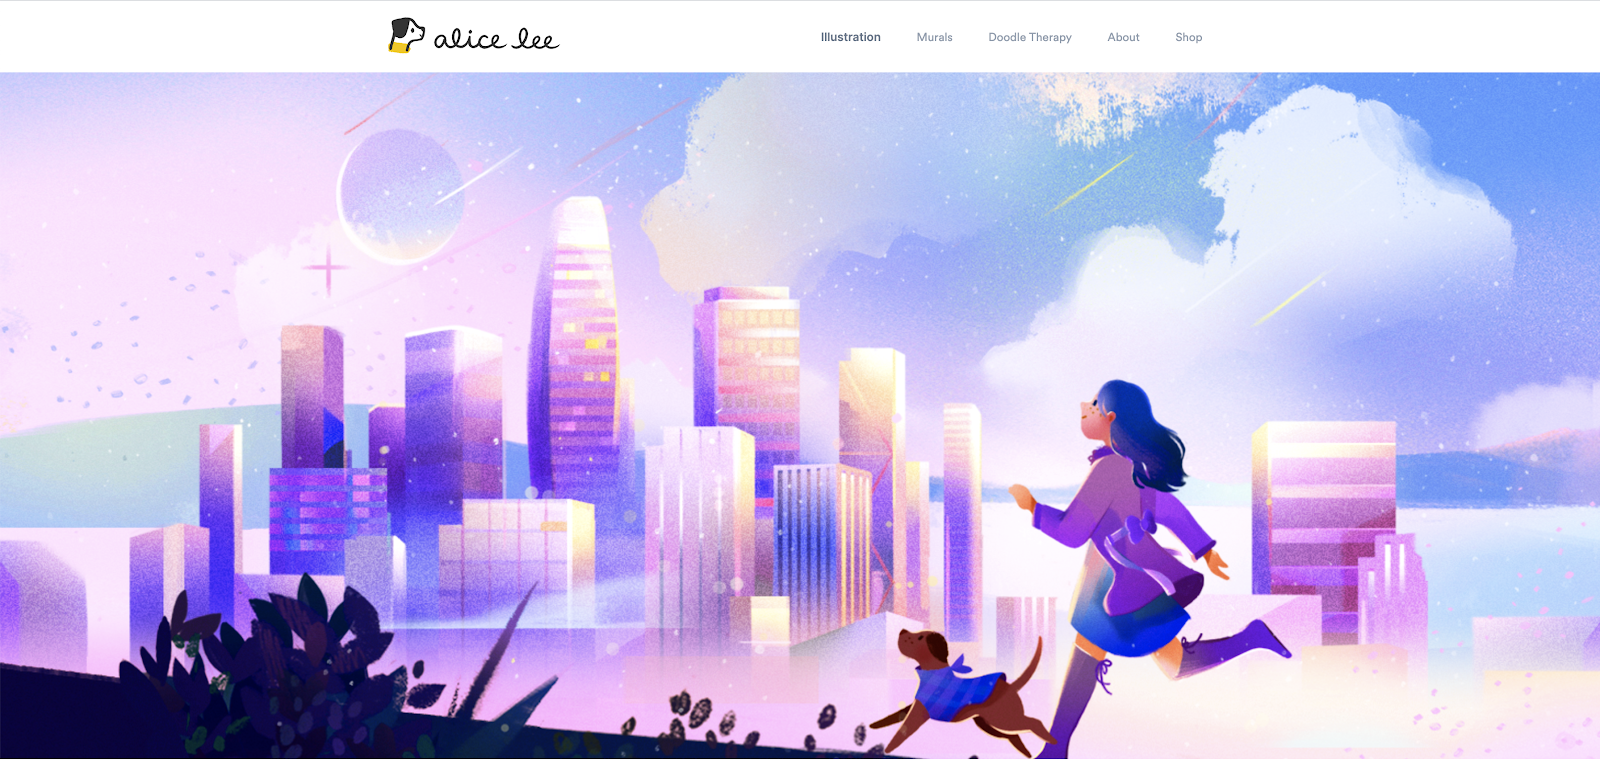 Alice Lee's home page uses subtle parallax scroll to bring one of her illustrations to life.